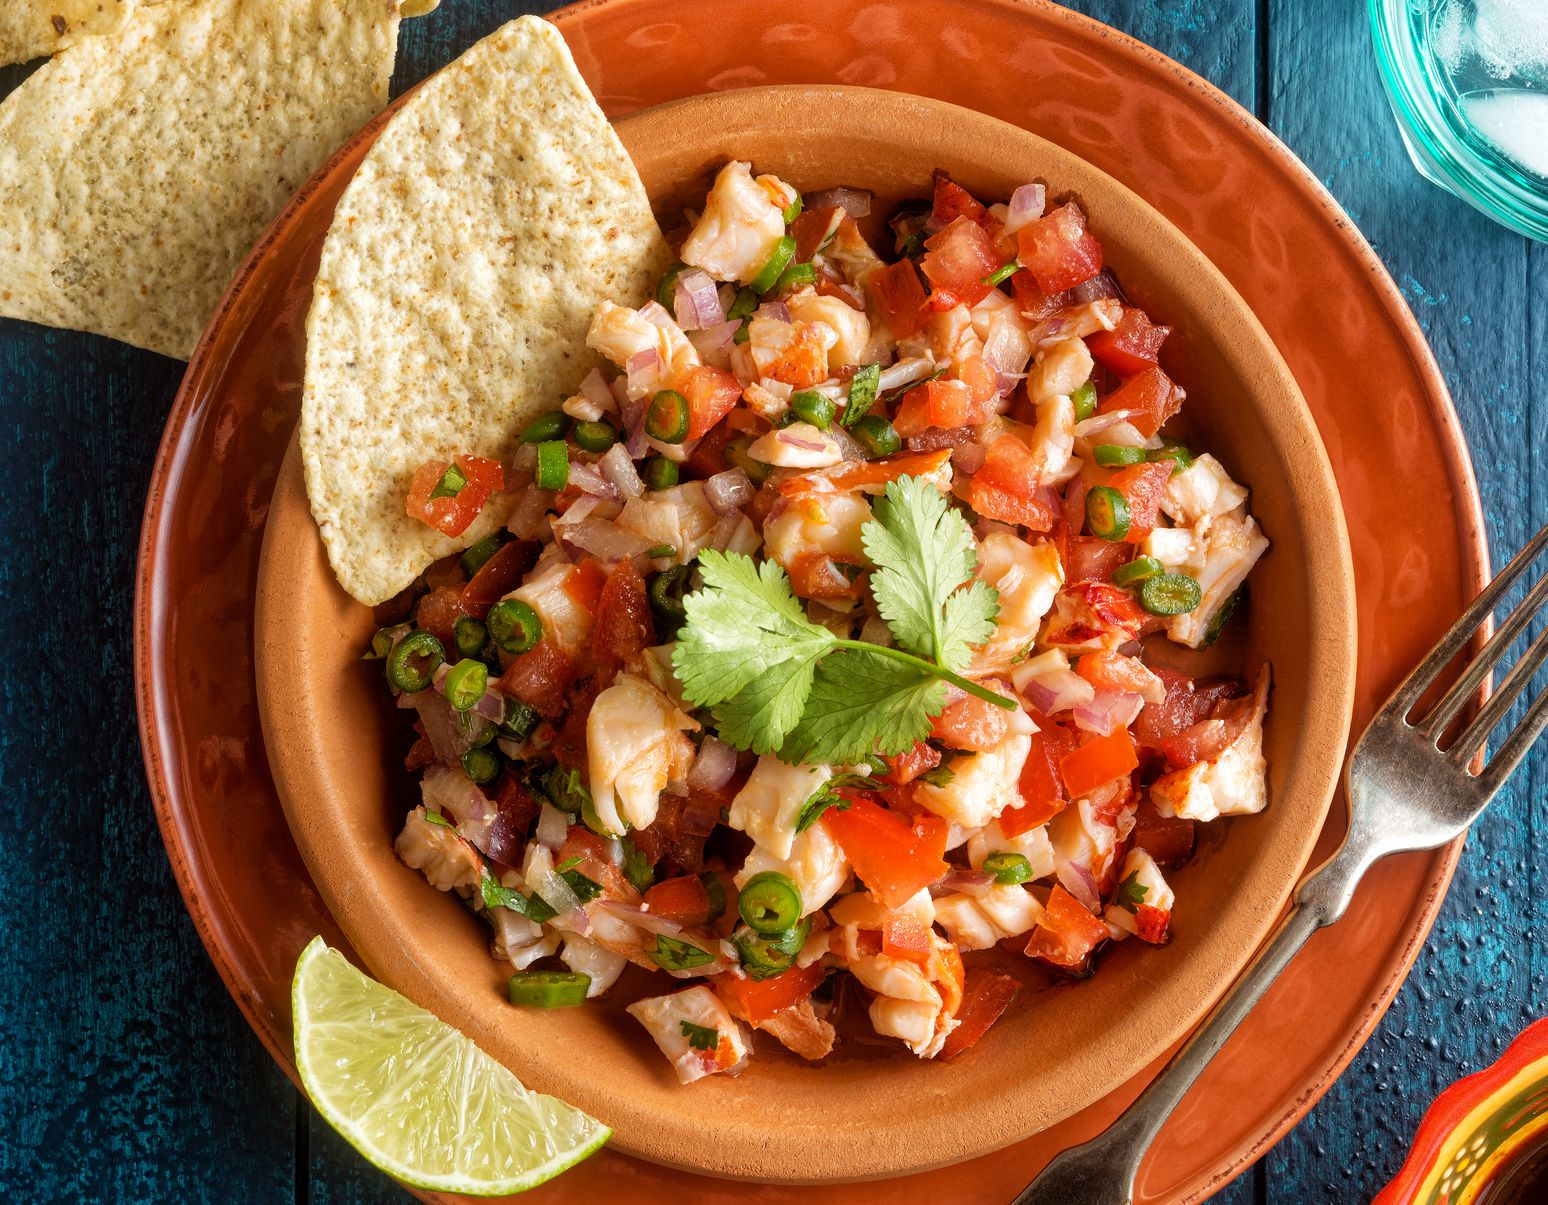 Ceviche Is More Than Just Raw Fish